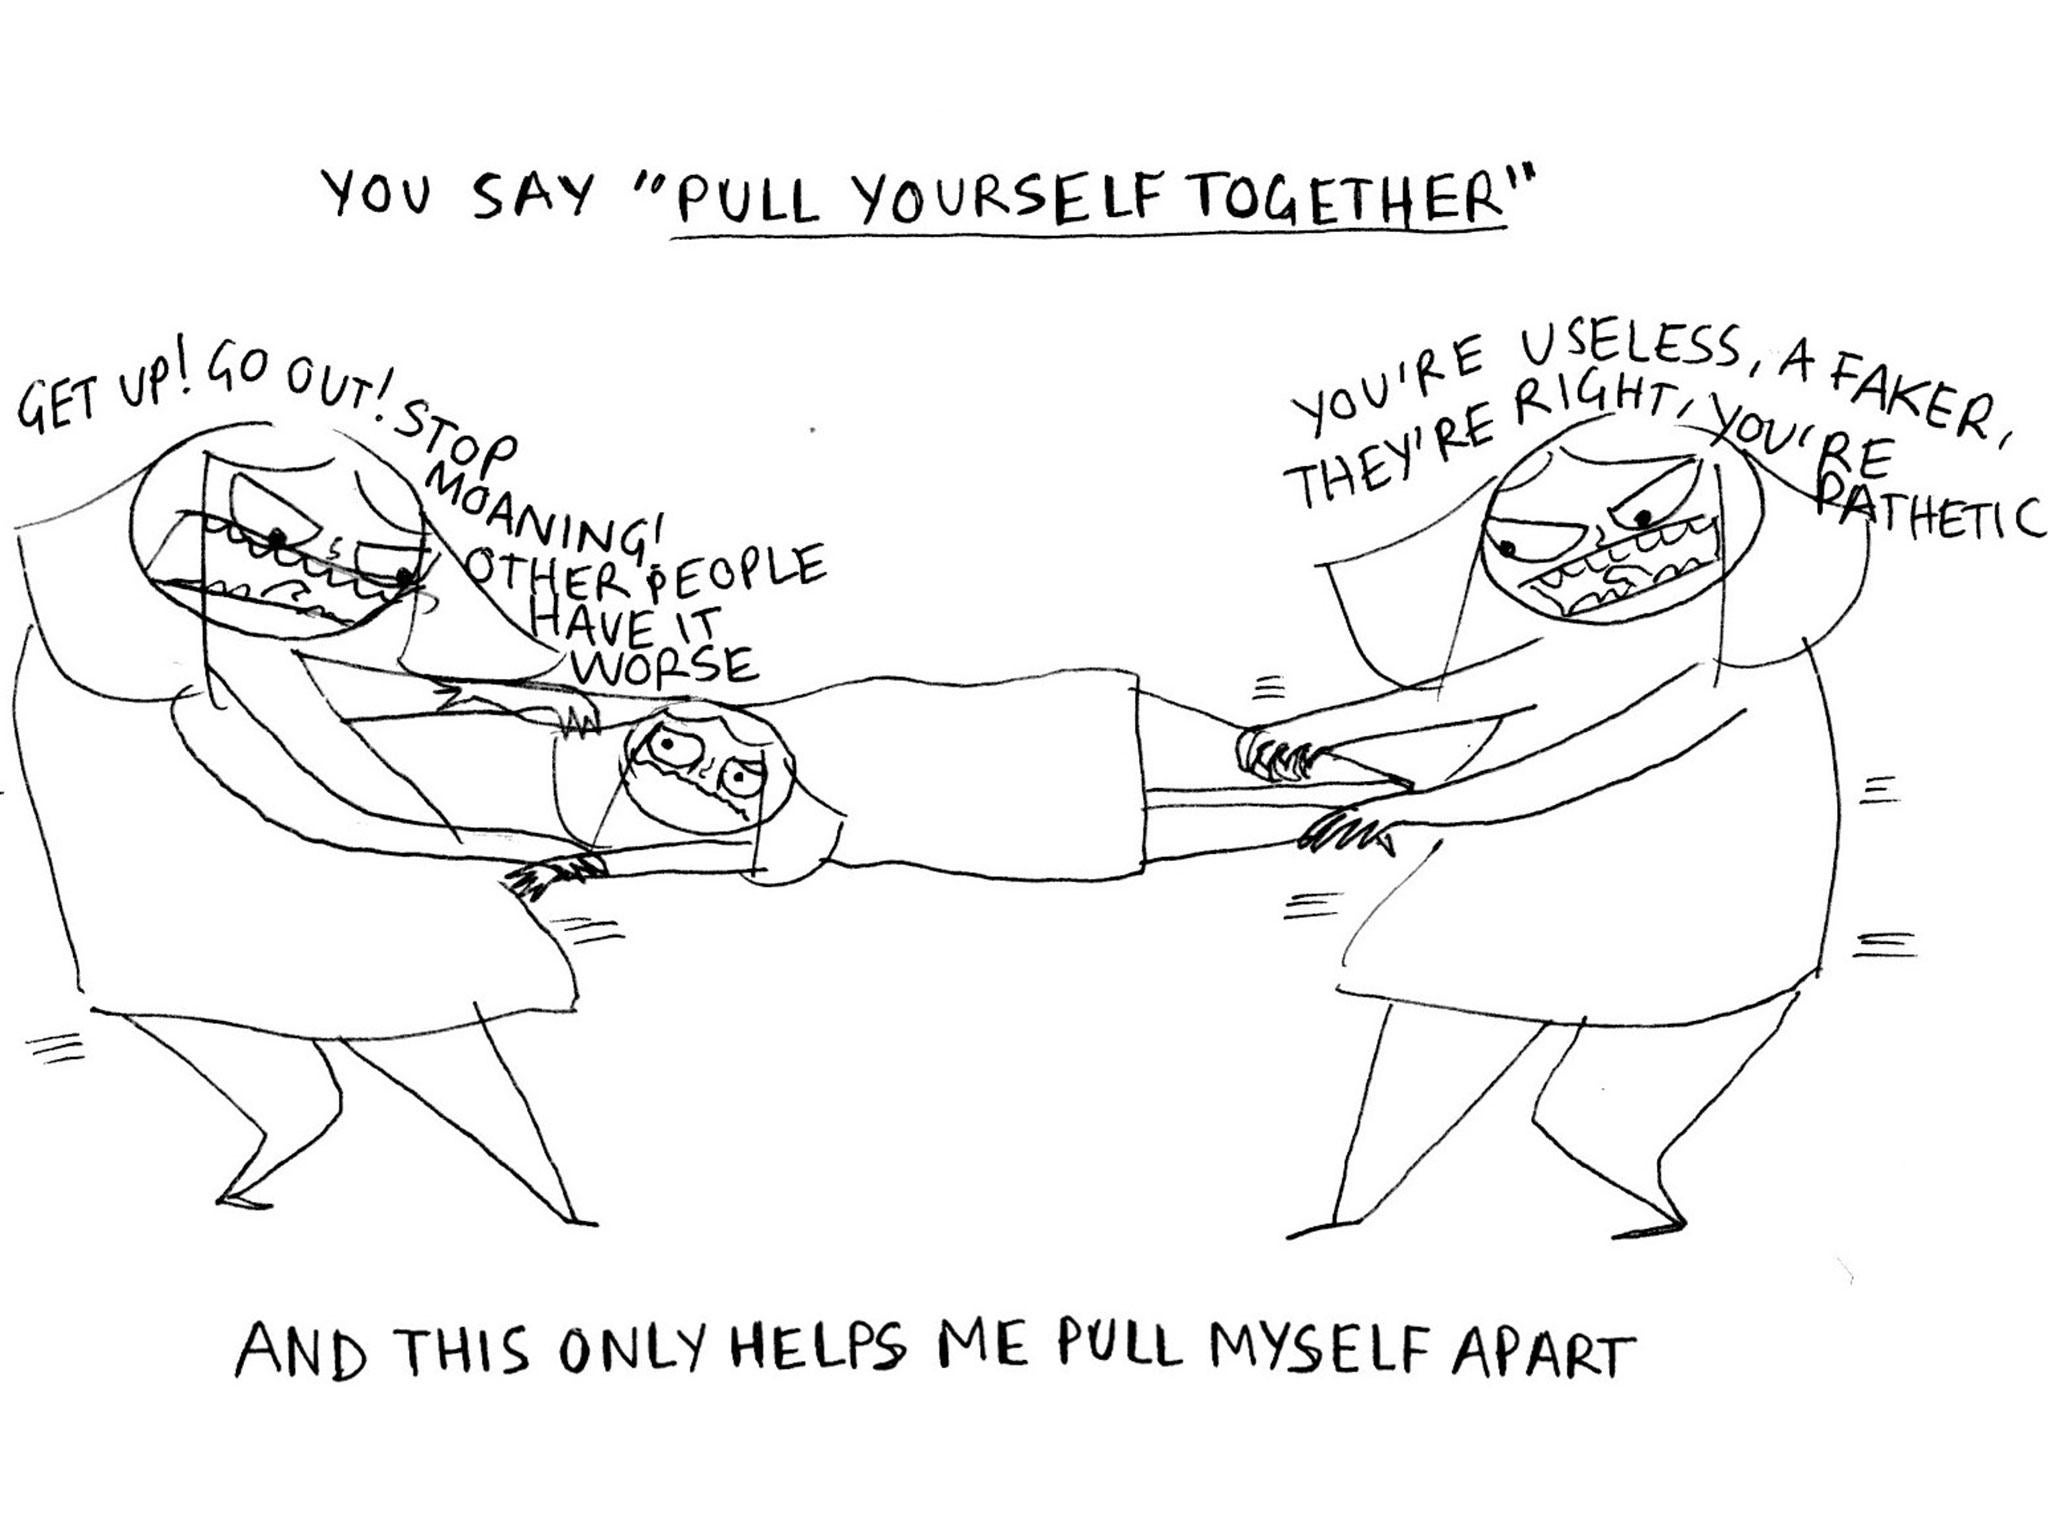 An illustrator's brutally honest and witty take on living with mental illness